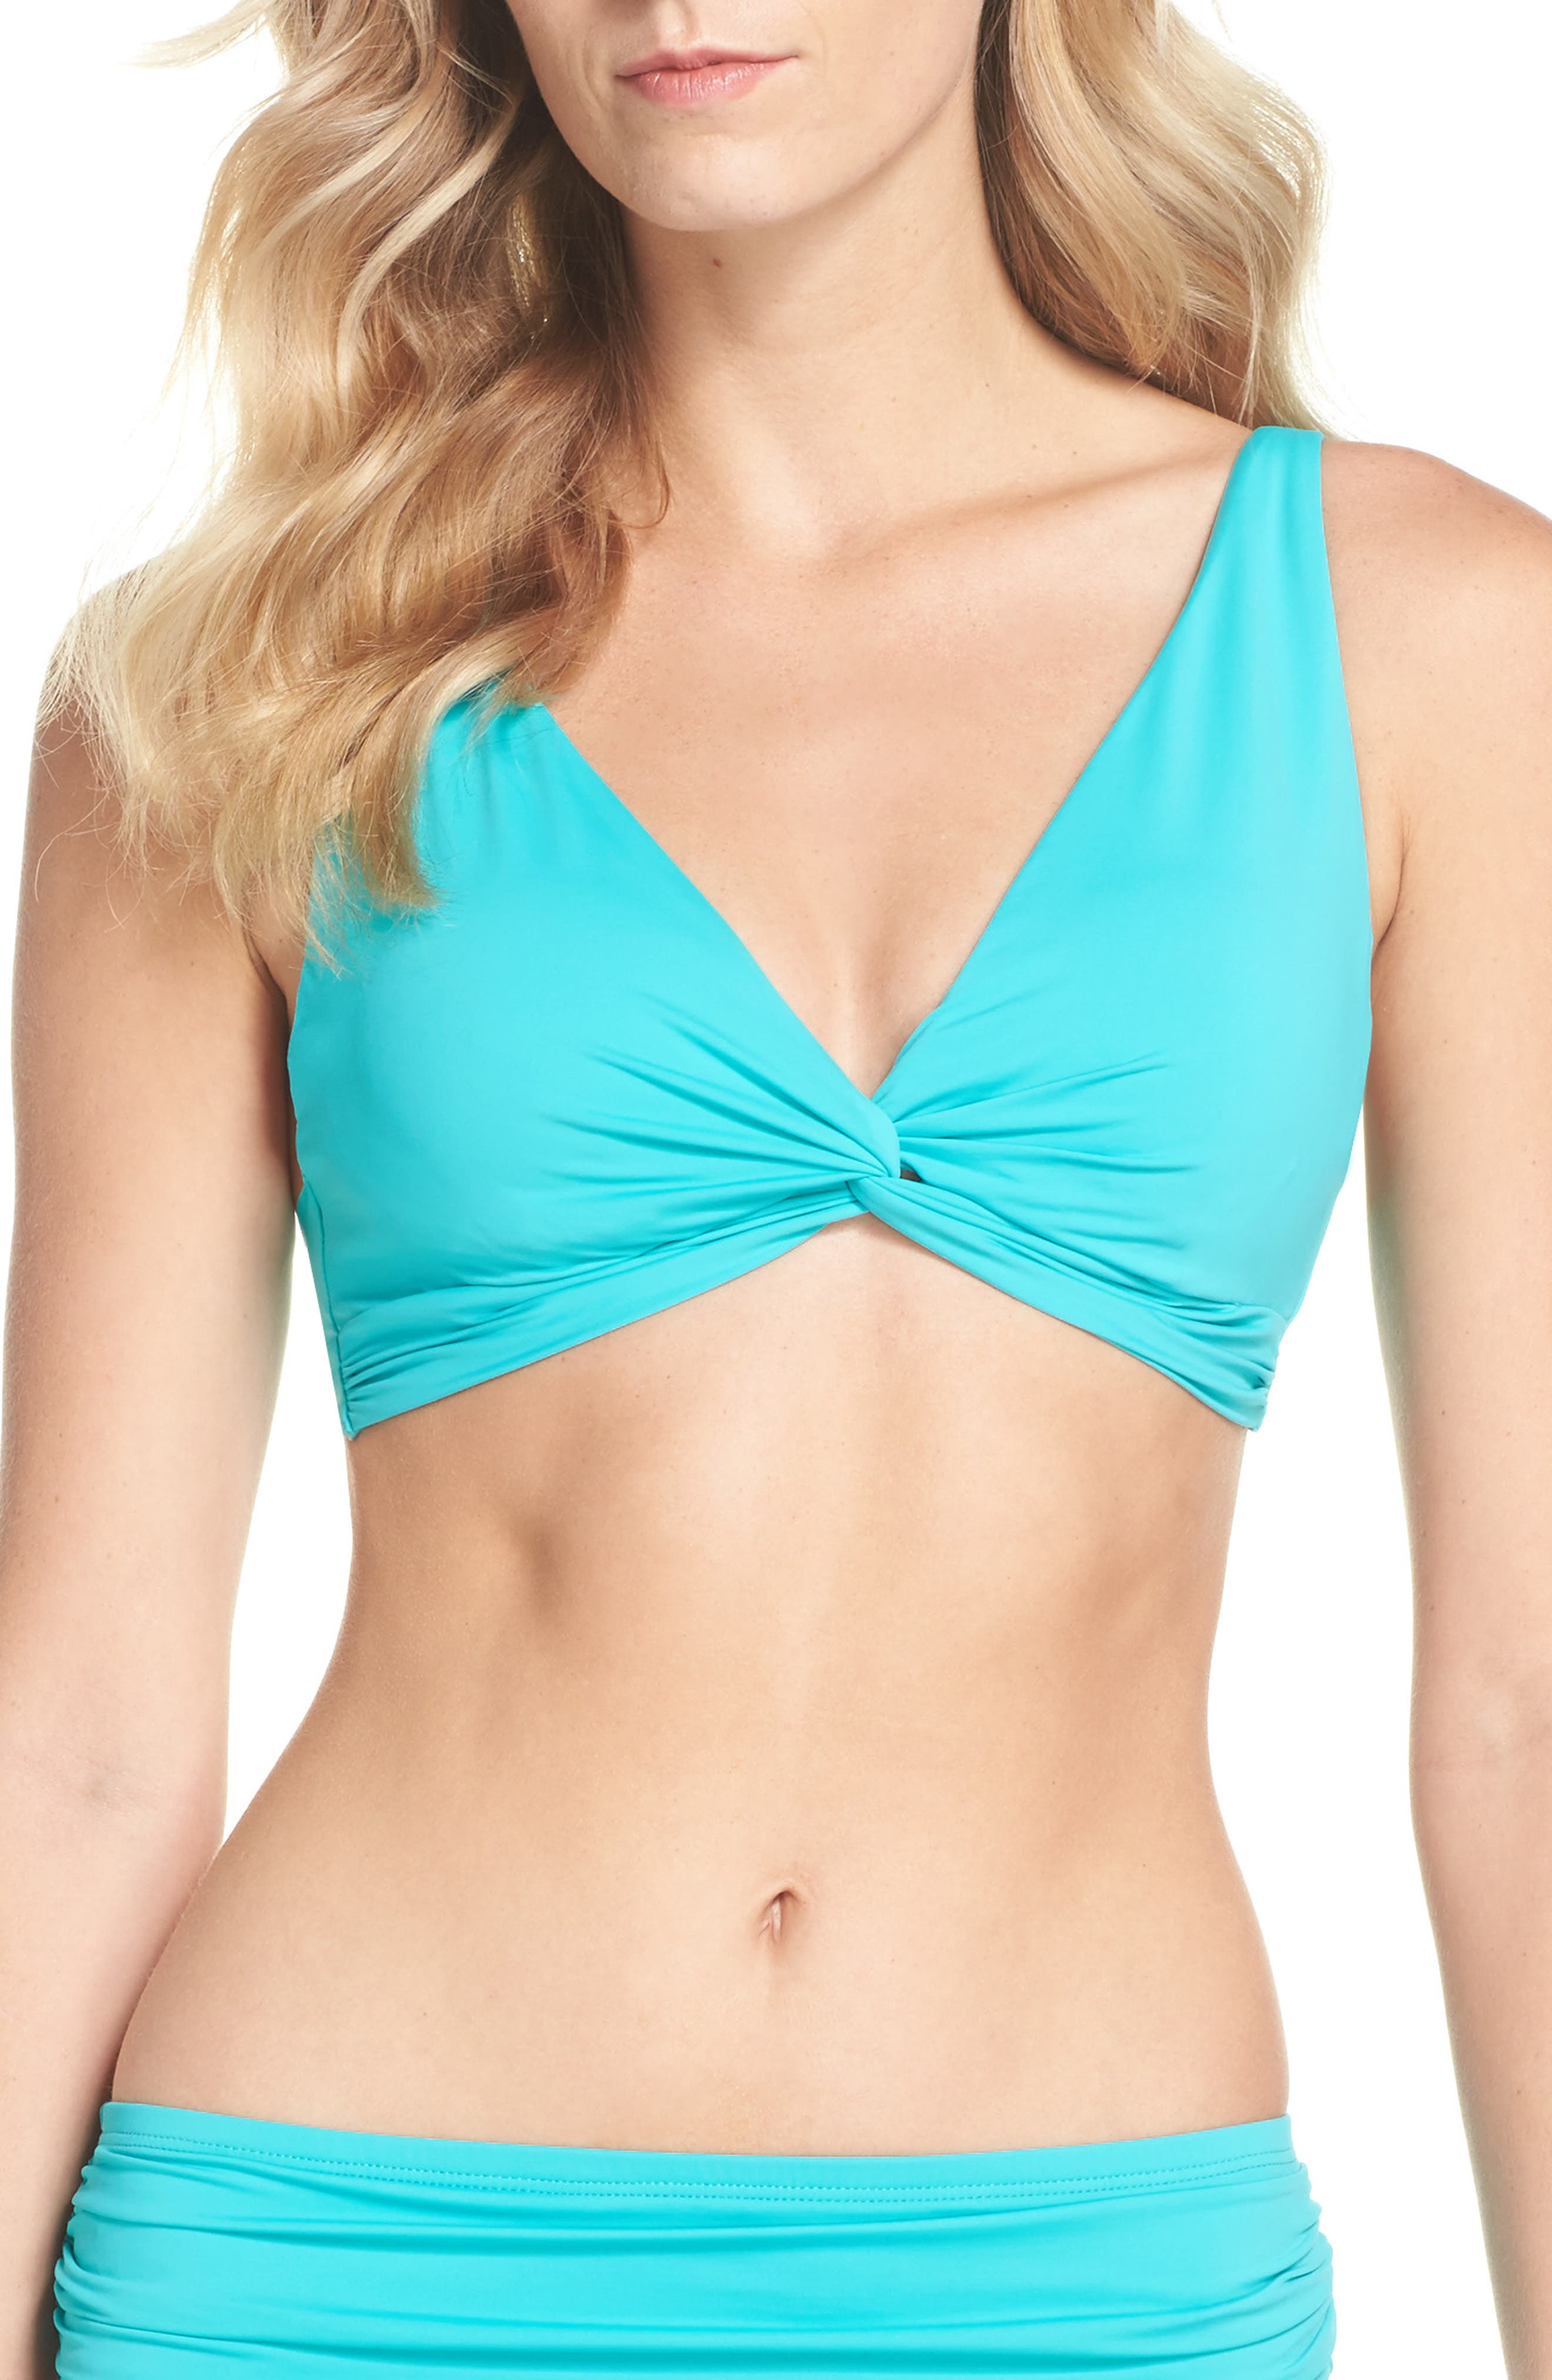 Alternate Image 1 Selected - Tommy Bahama Pearl Twist Front Underwire Bikini Top